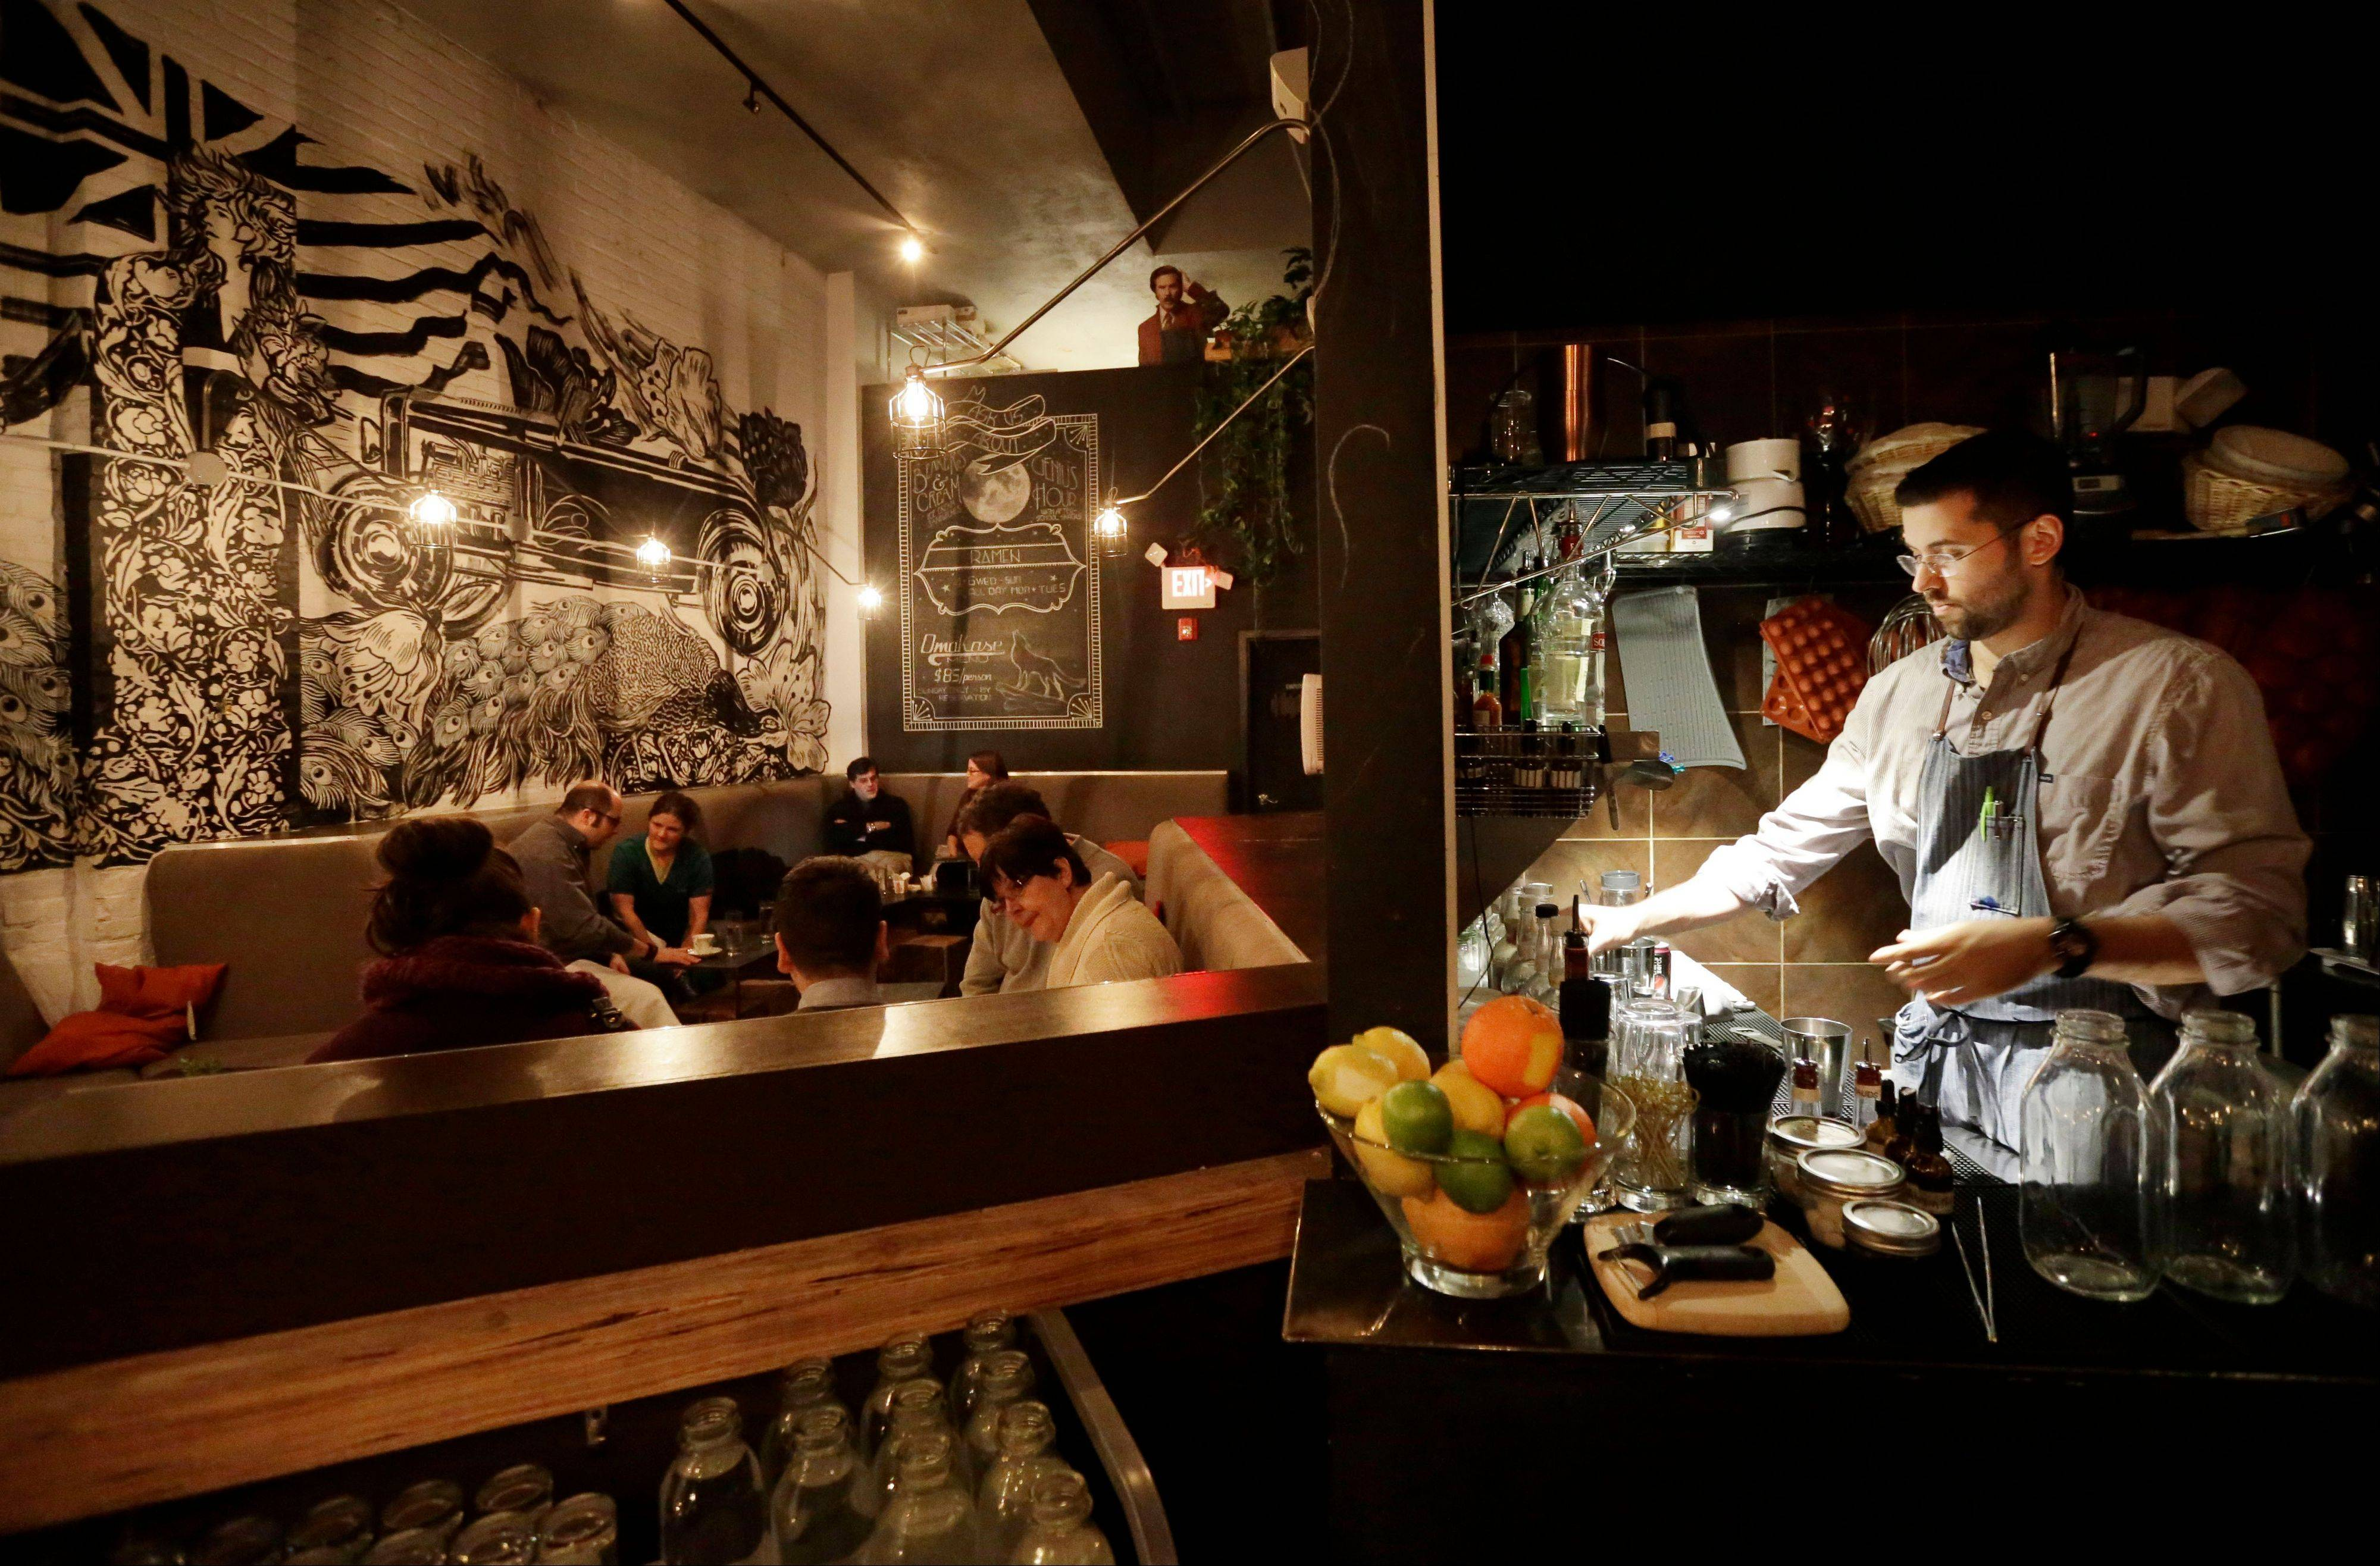 Bartender Joseph Cammarata, right, prepares drinks as patrons sit at tables at the backbar restaurant and bar in Somerville, Mass.